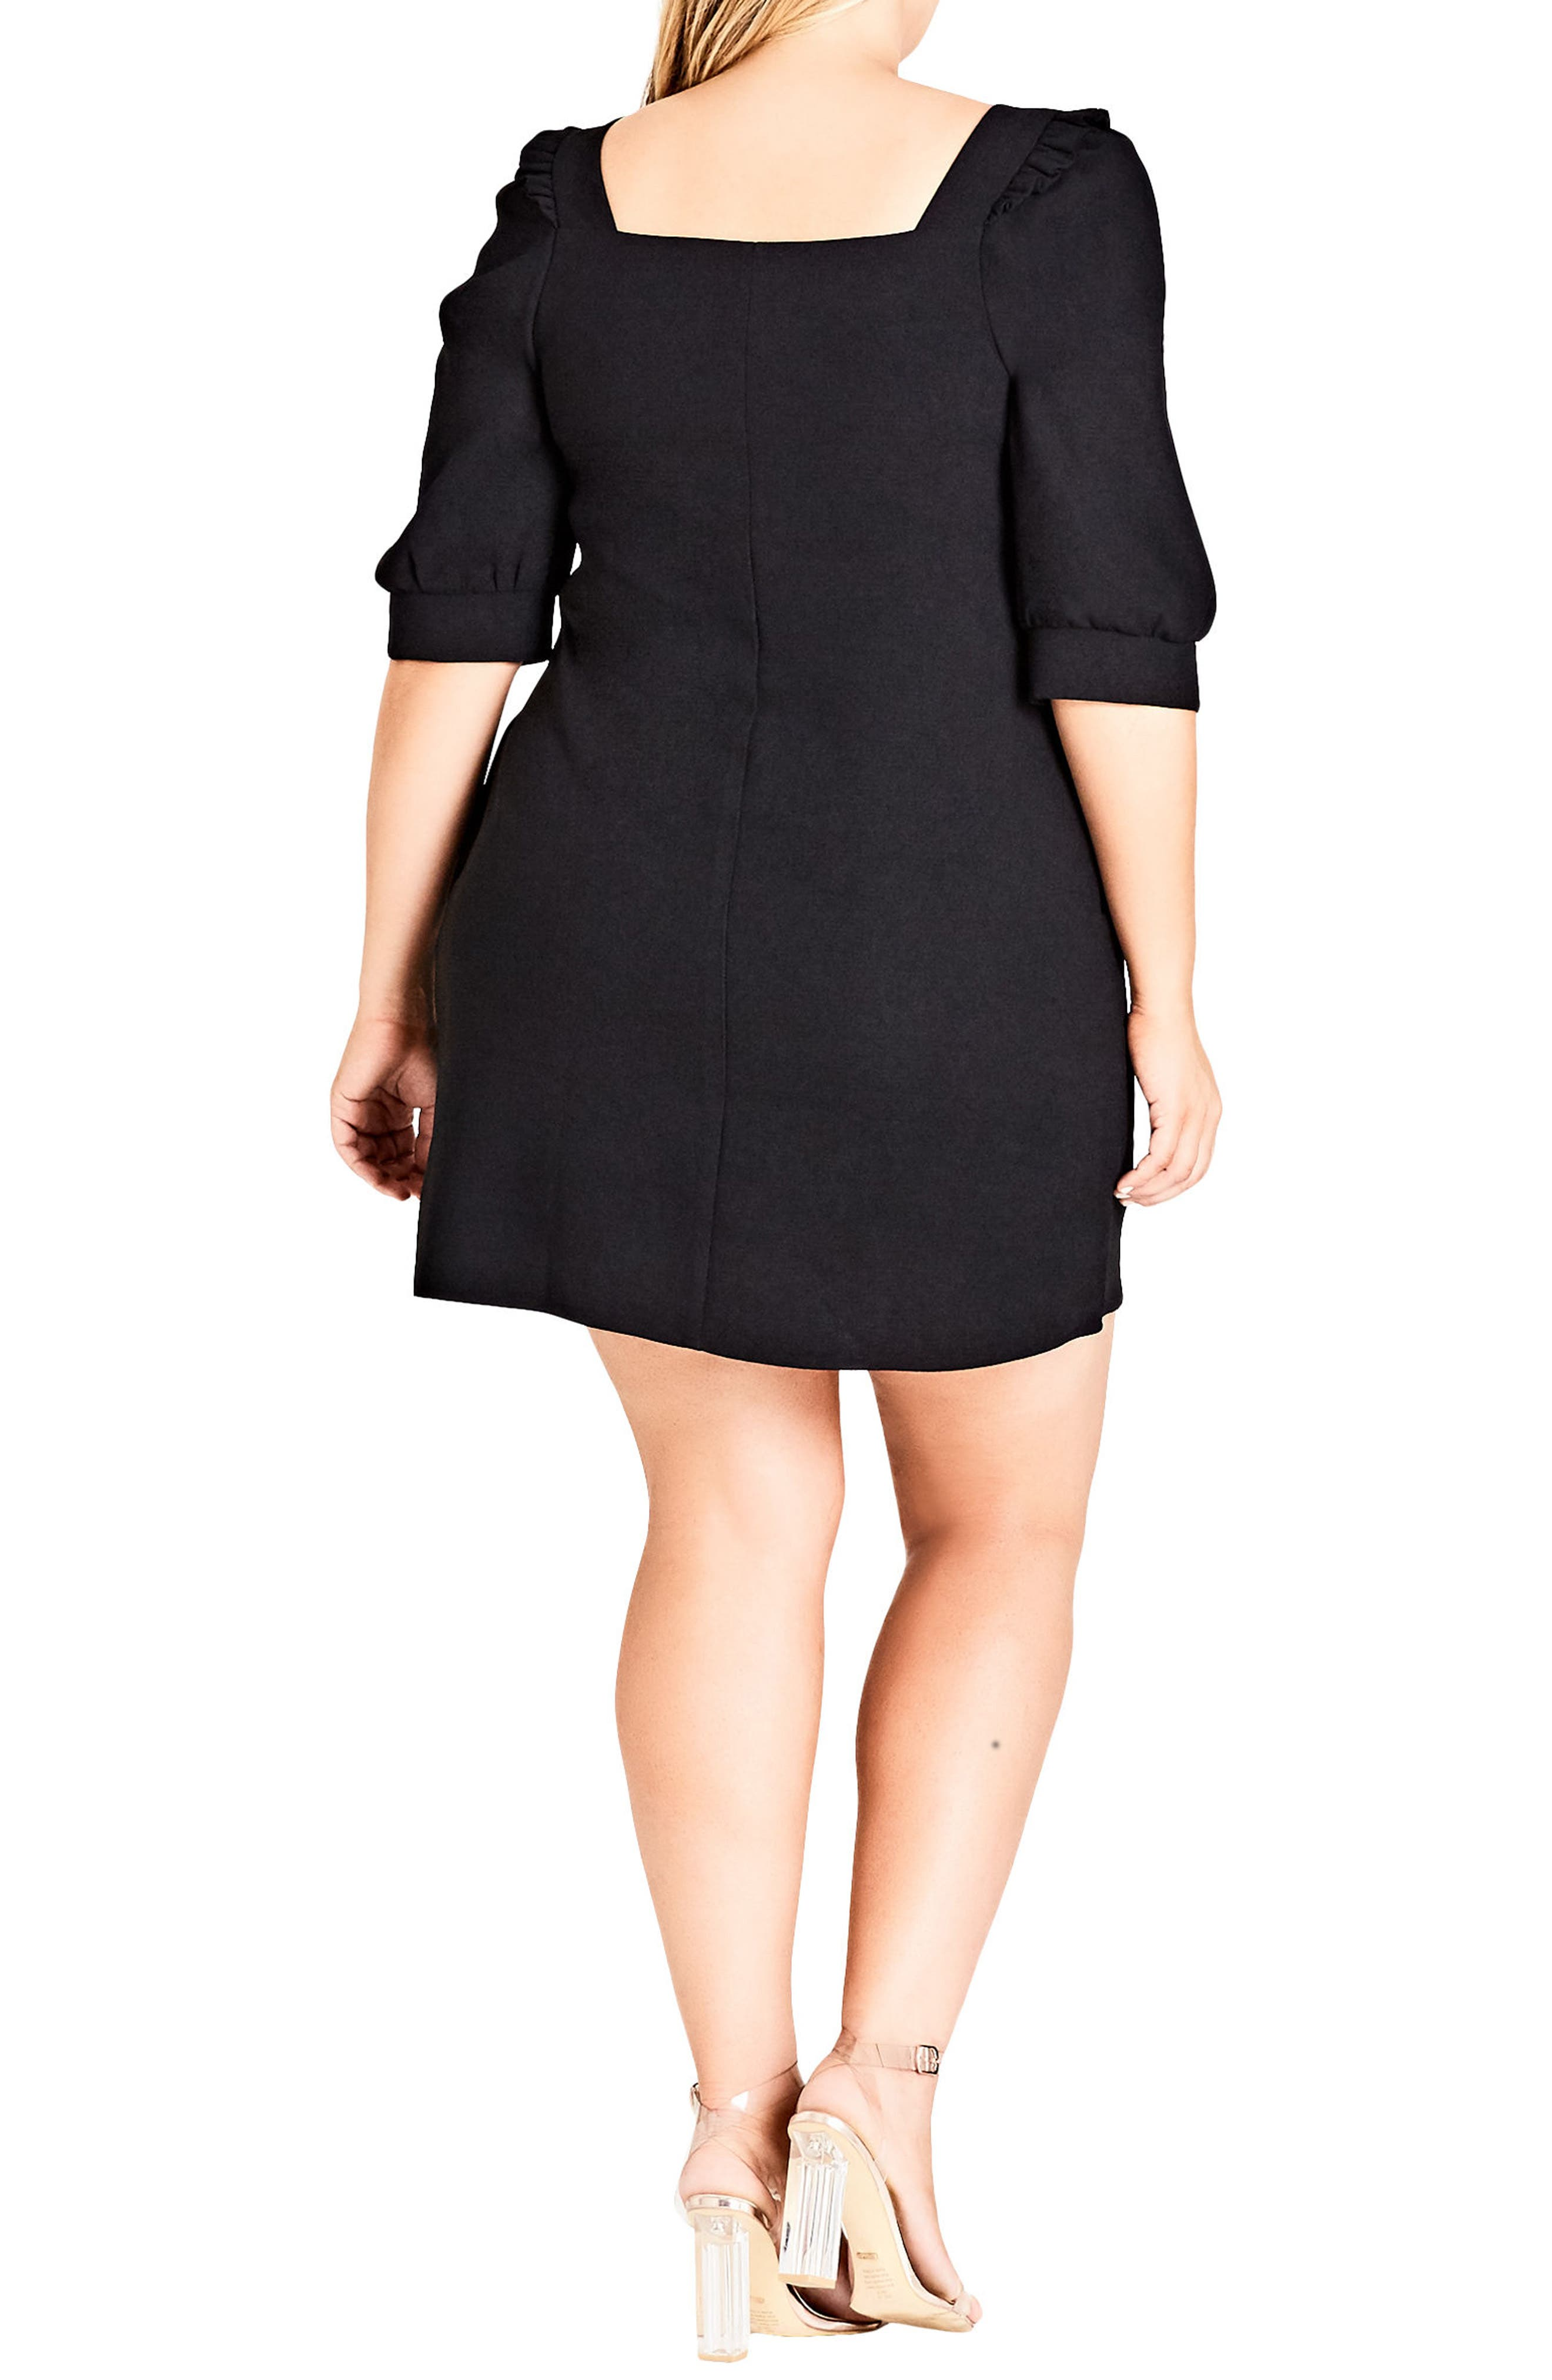 Darling Square Neck Dress,                             Alternate thumbnail 2, color,                             Black